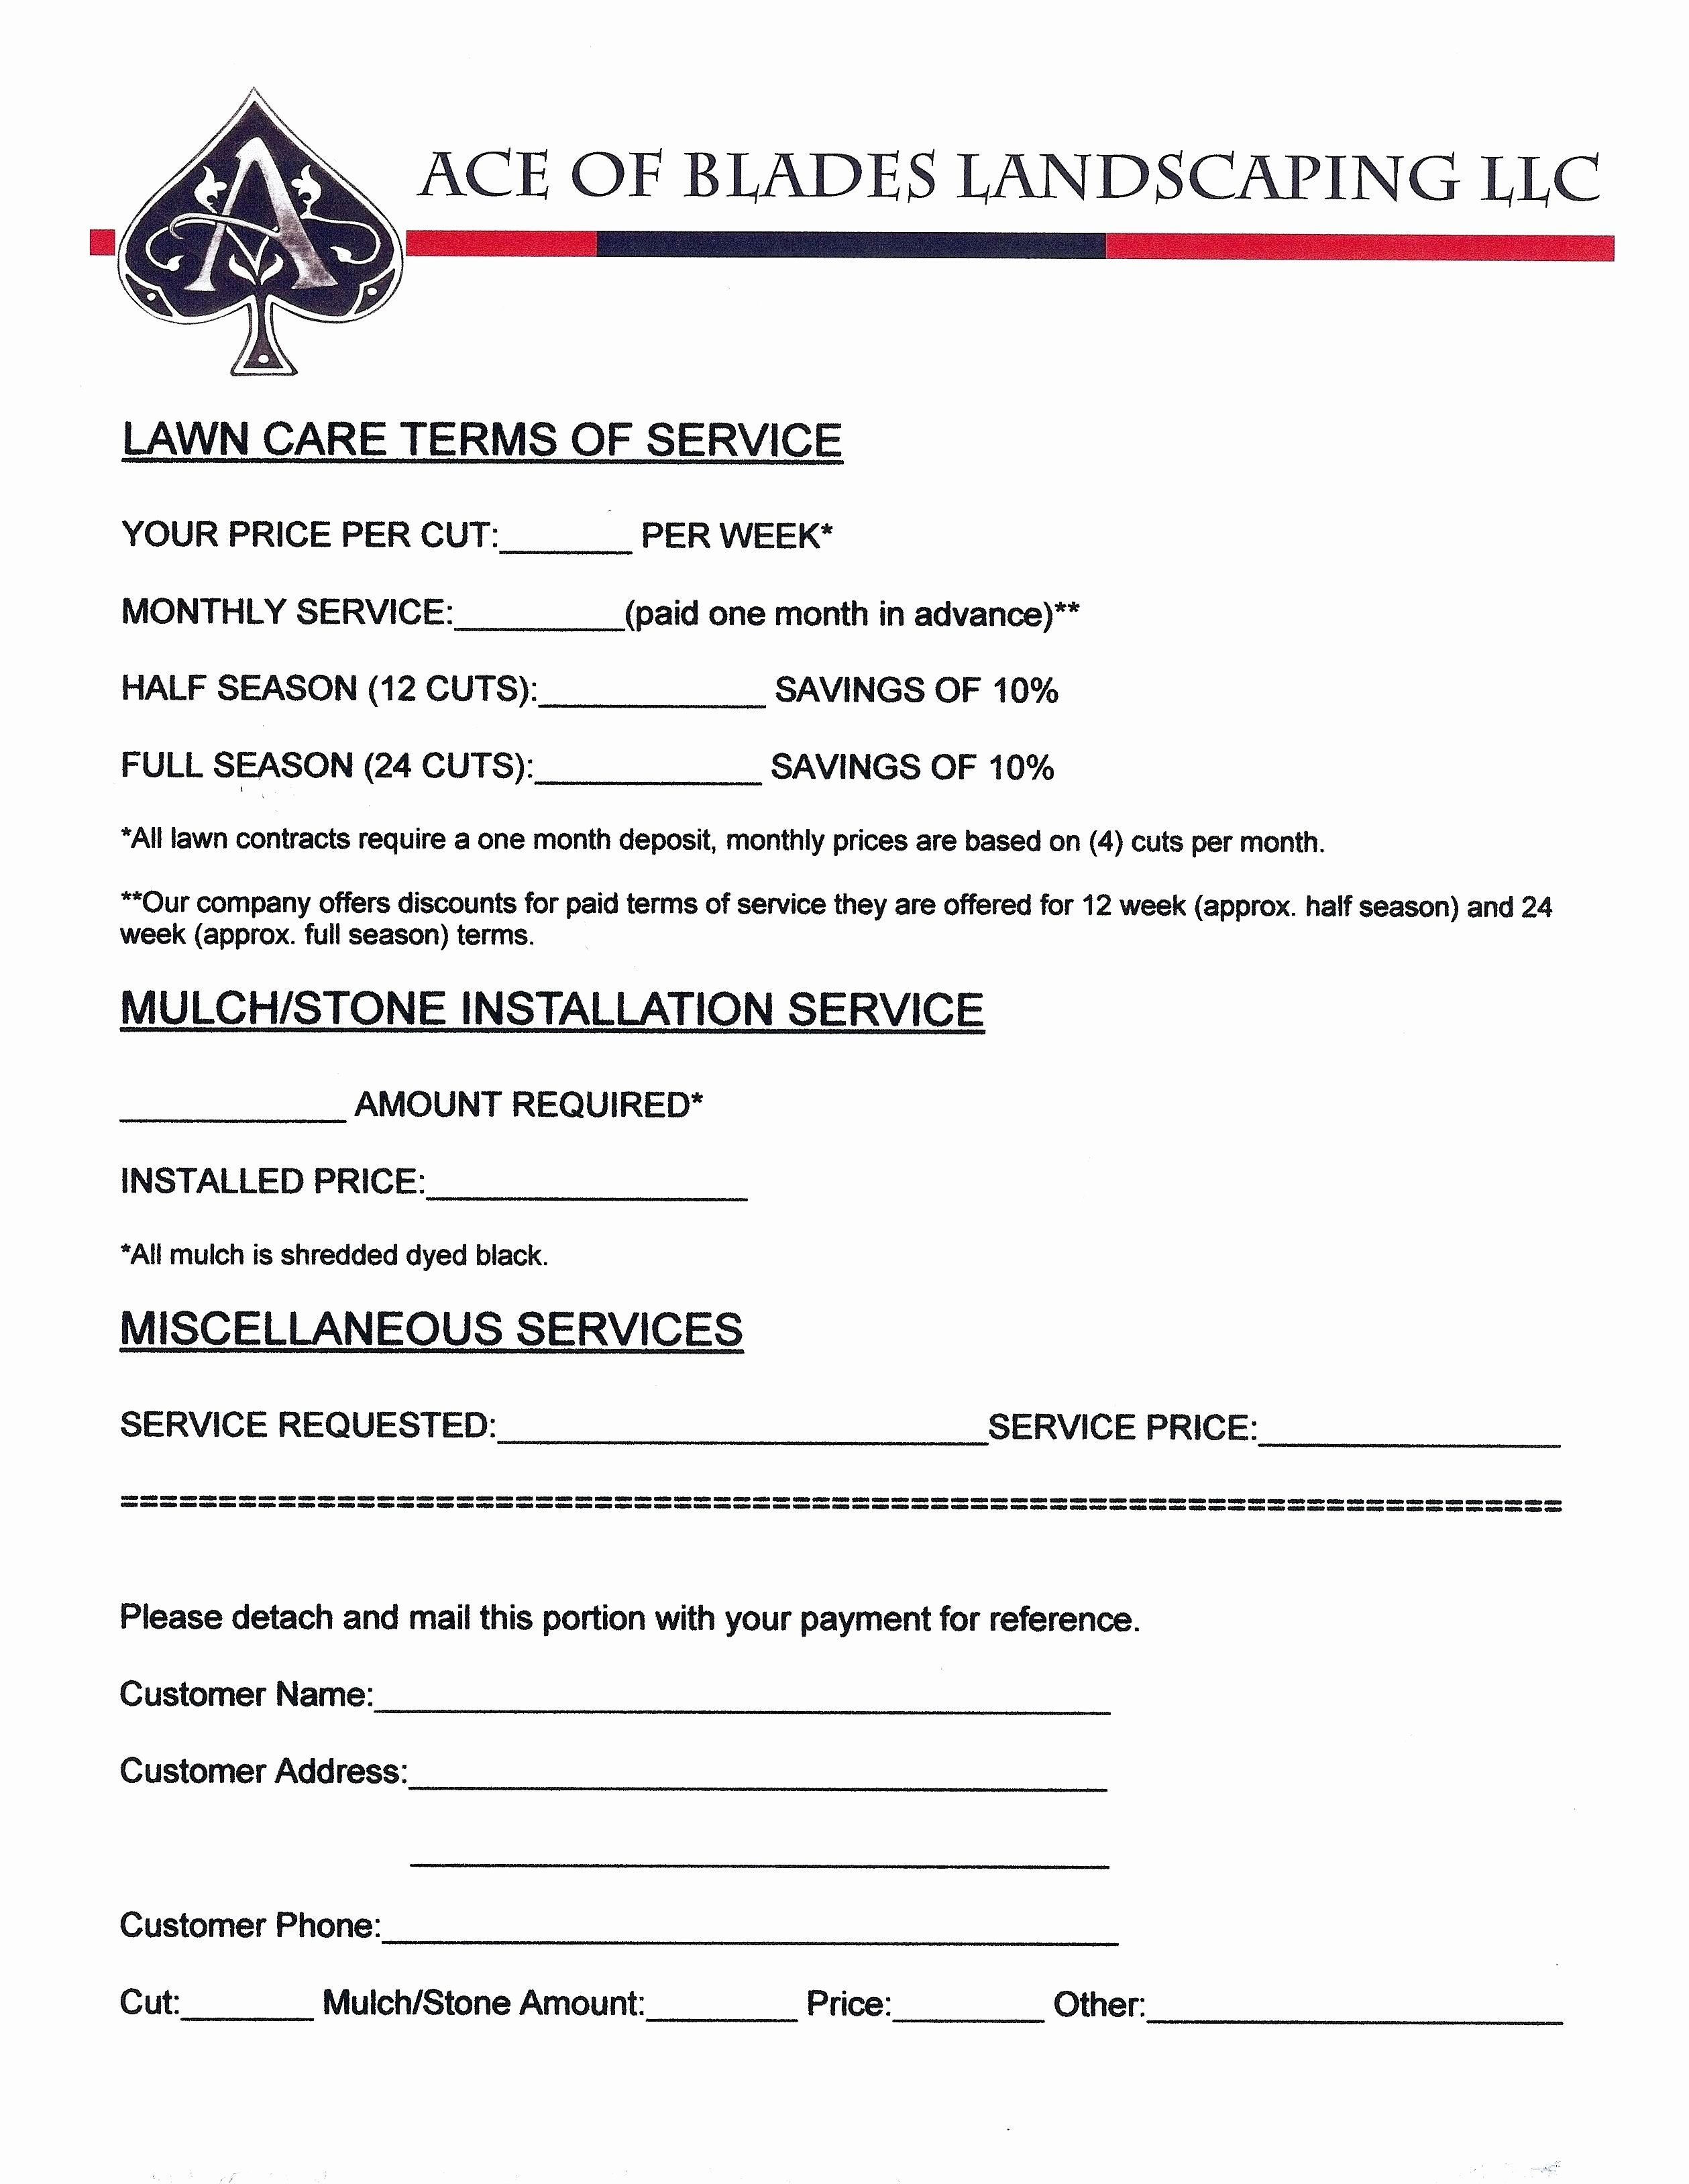 Lawn Care Contract Template Free Awesome Samples Lawn Care Quotes Quotesgram Lawn Care Business Business Plan Template Free Lawn Care Lawn service proposal template free